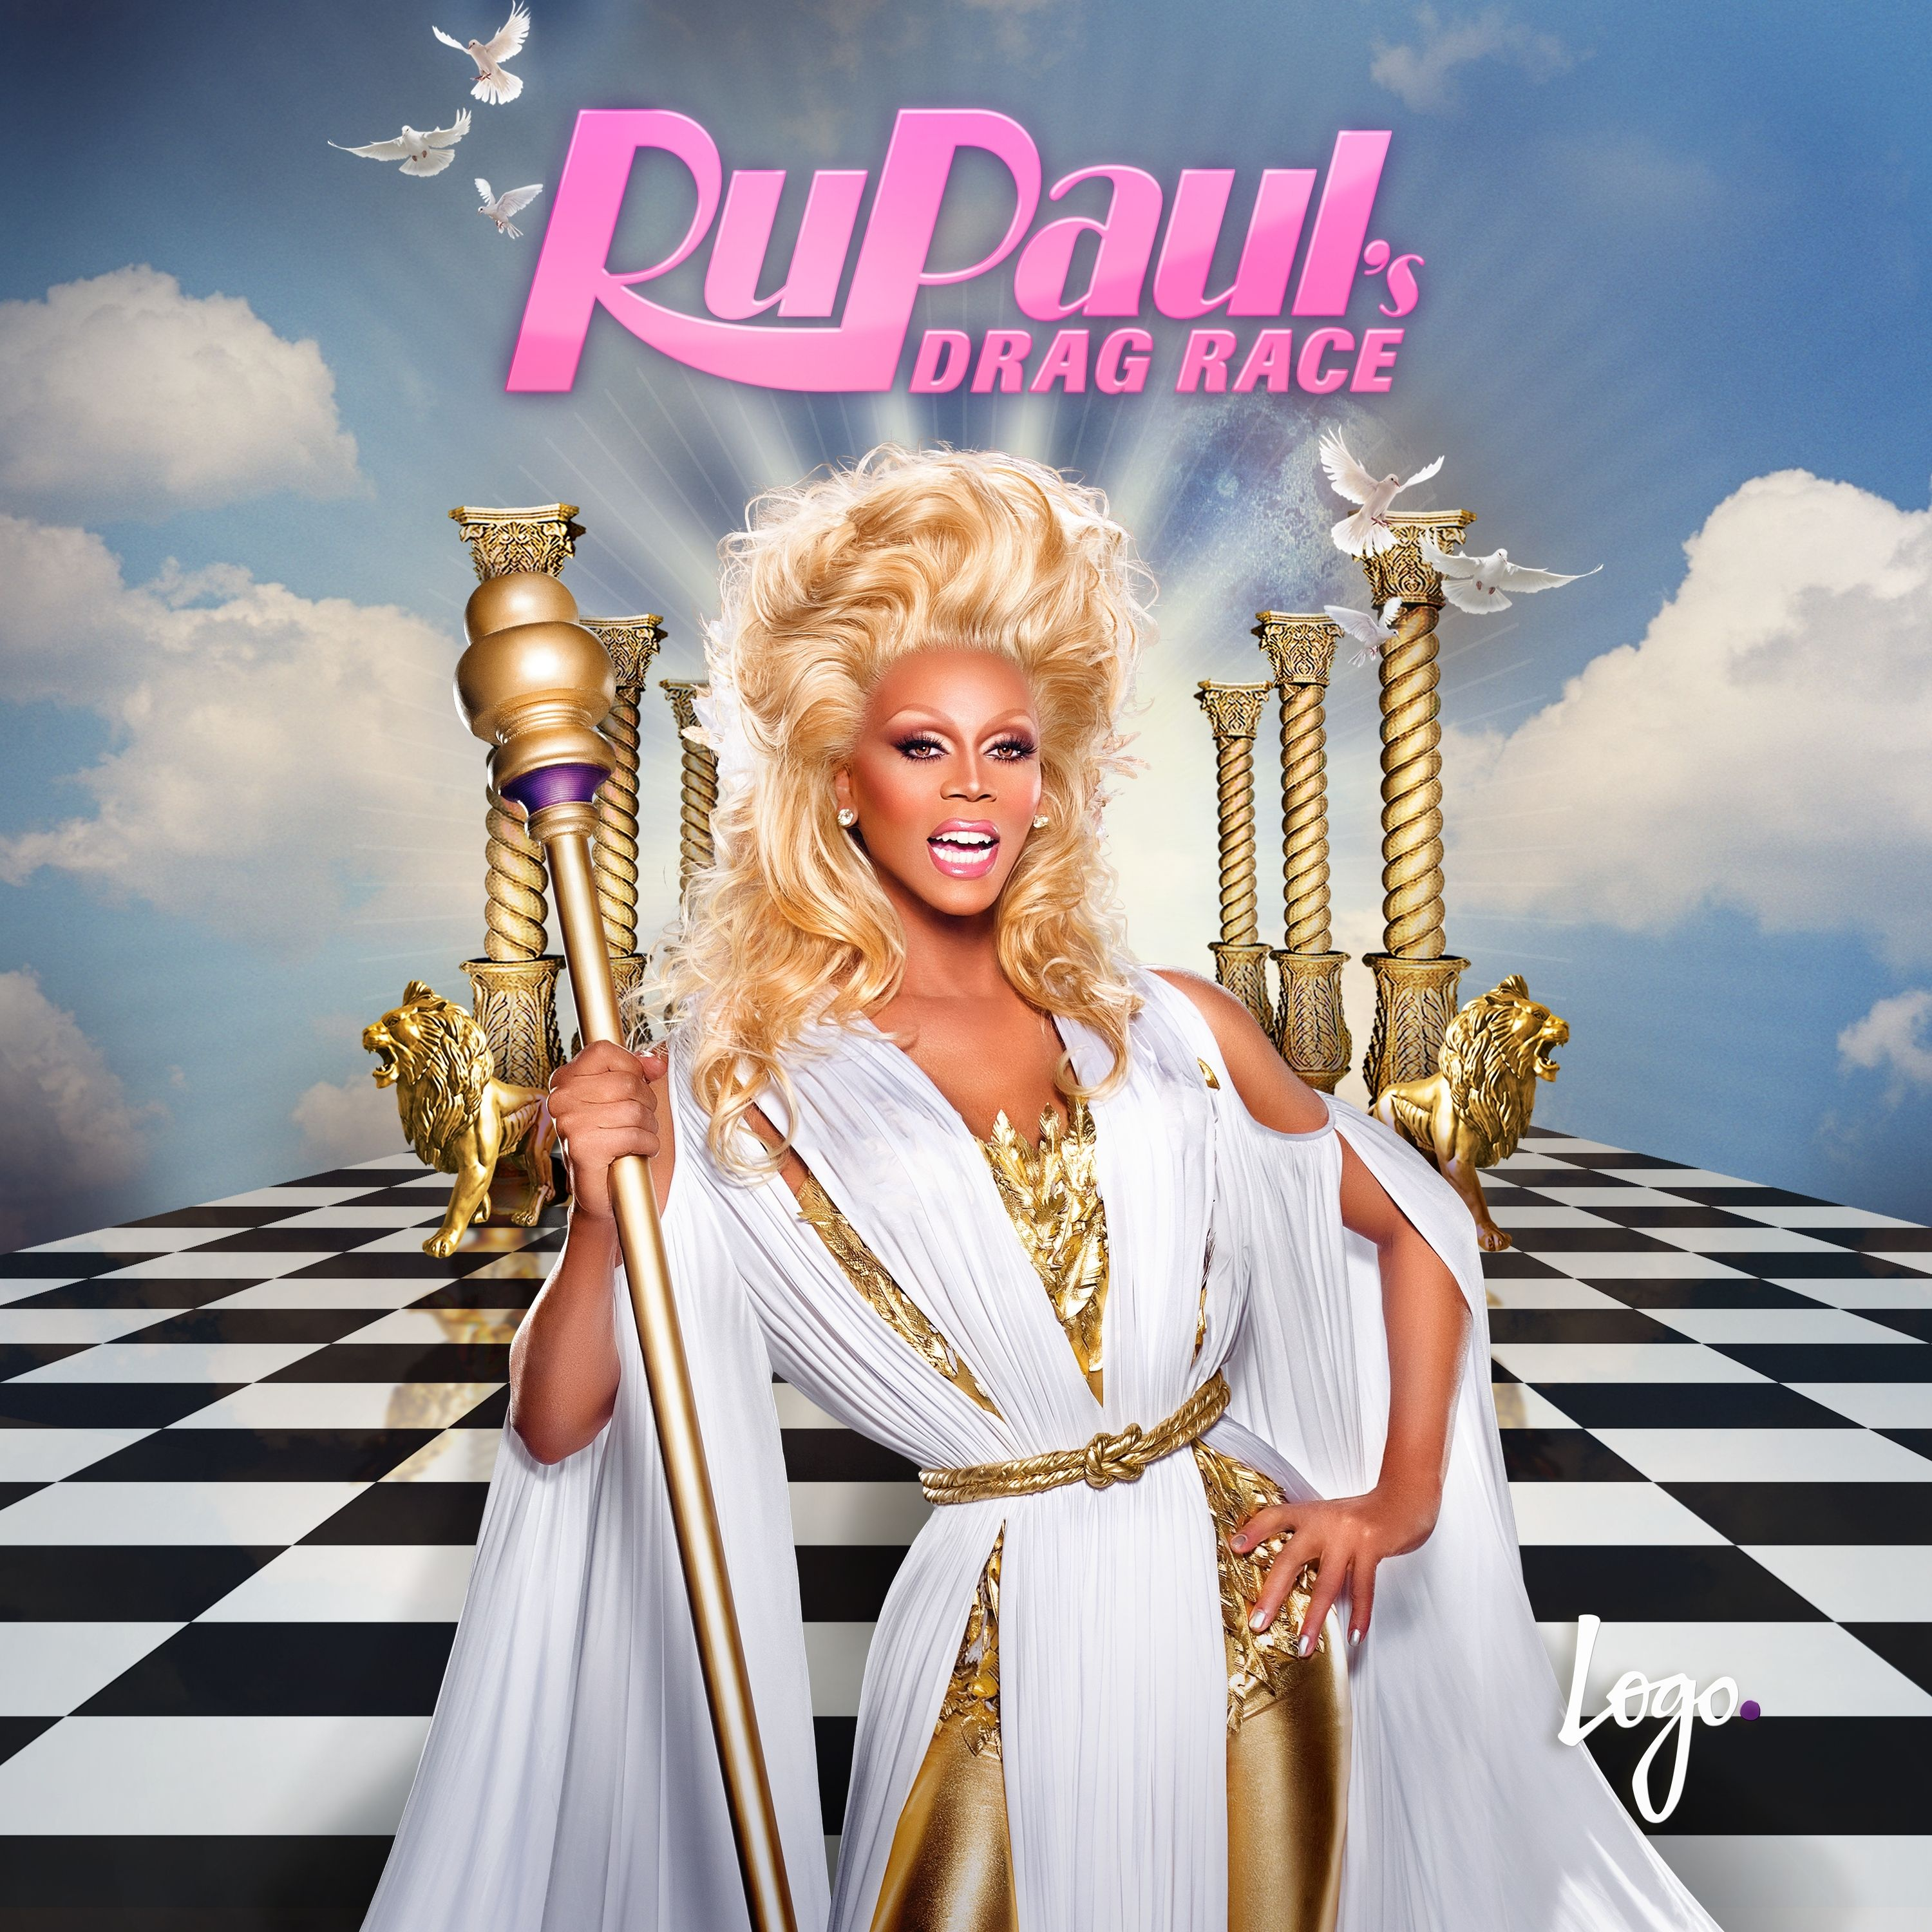 RuPaul's Drag Race (Season 5)